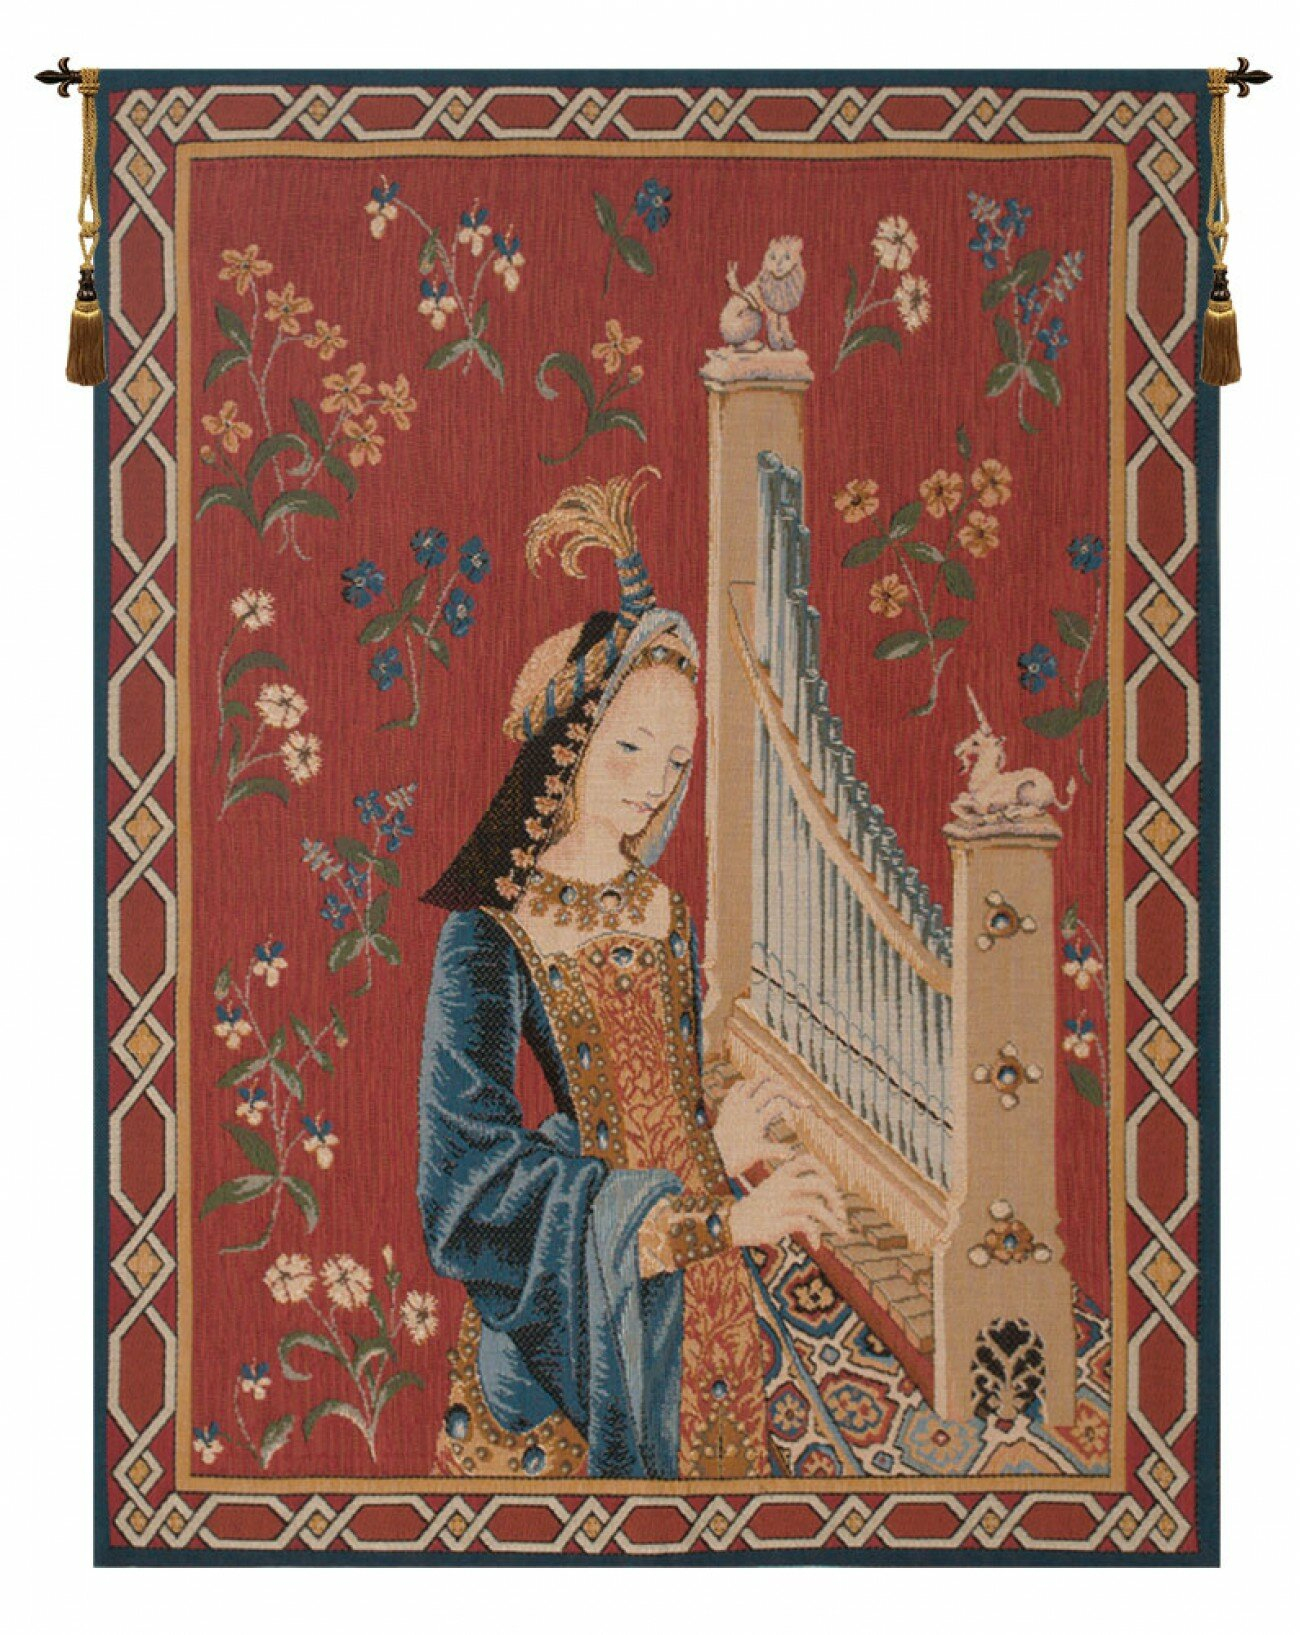 Dame A La Licorne I Tapestry In Most Up To Date Blended Fabric The Pomona Wall Hangings (View 6 of 20)